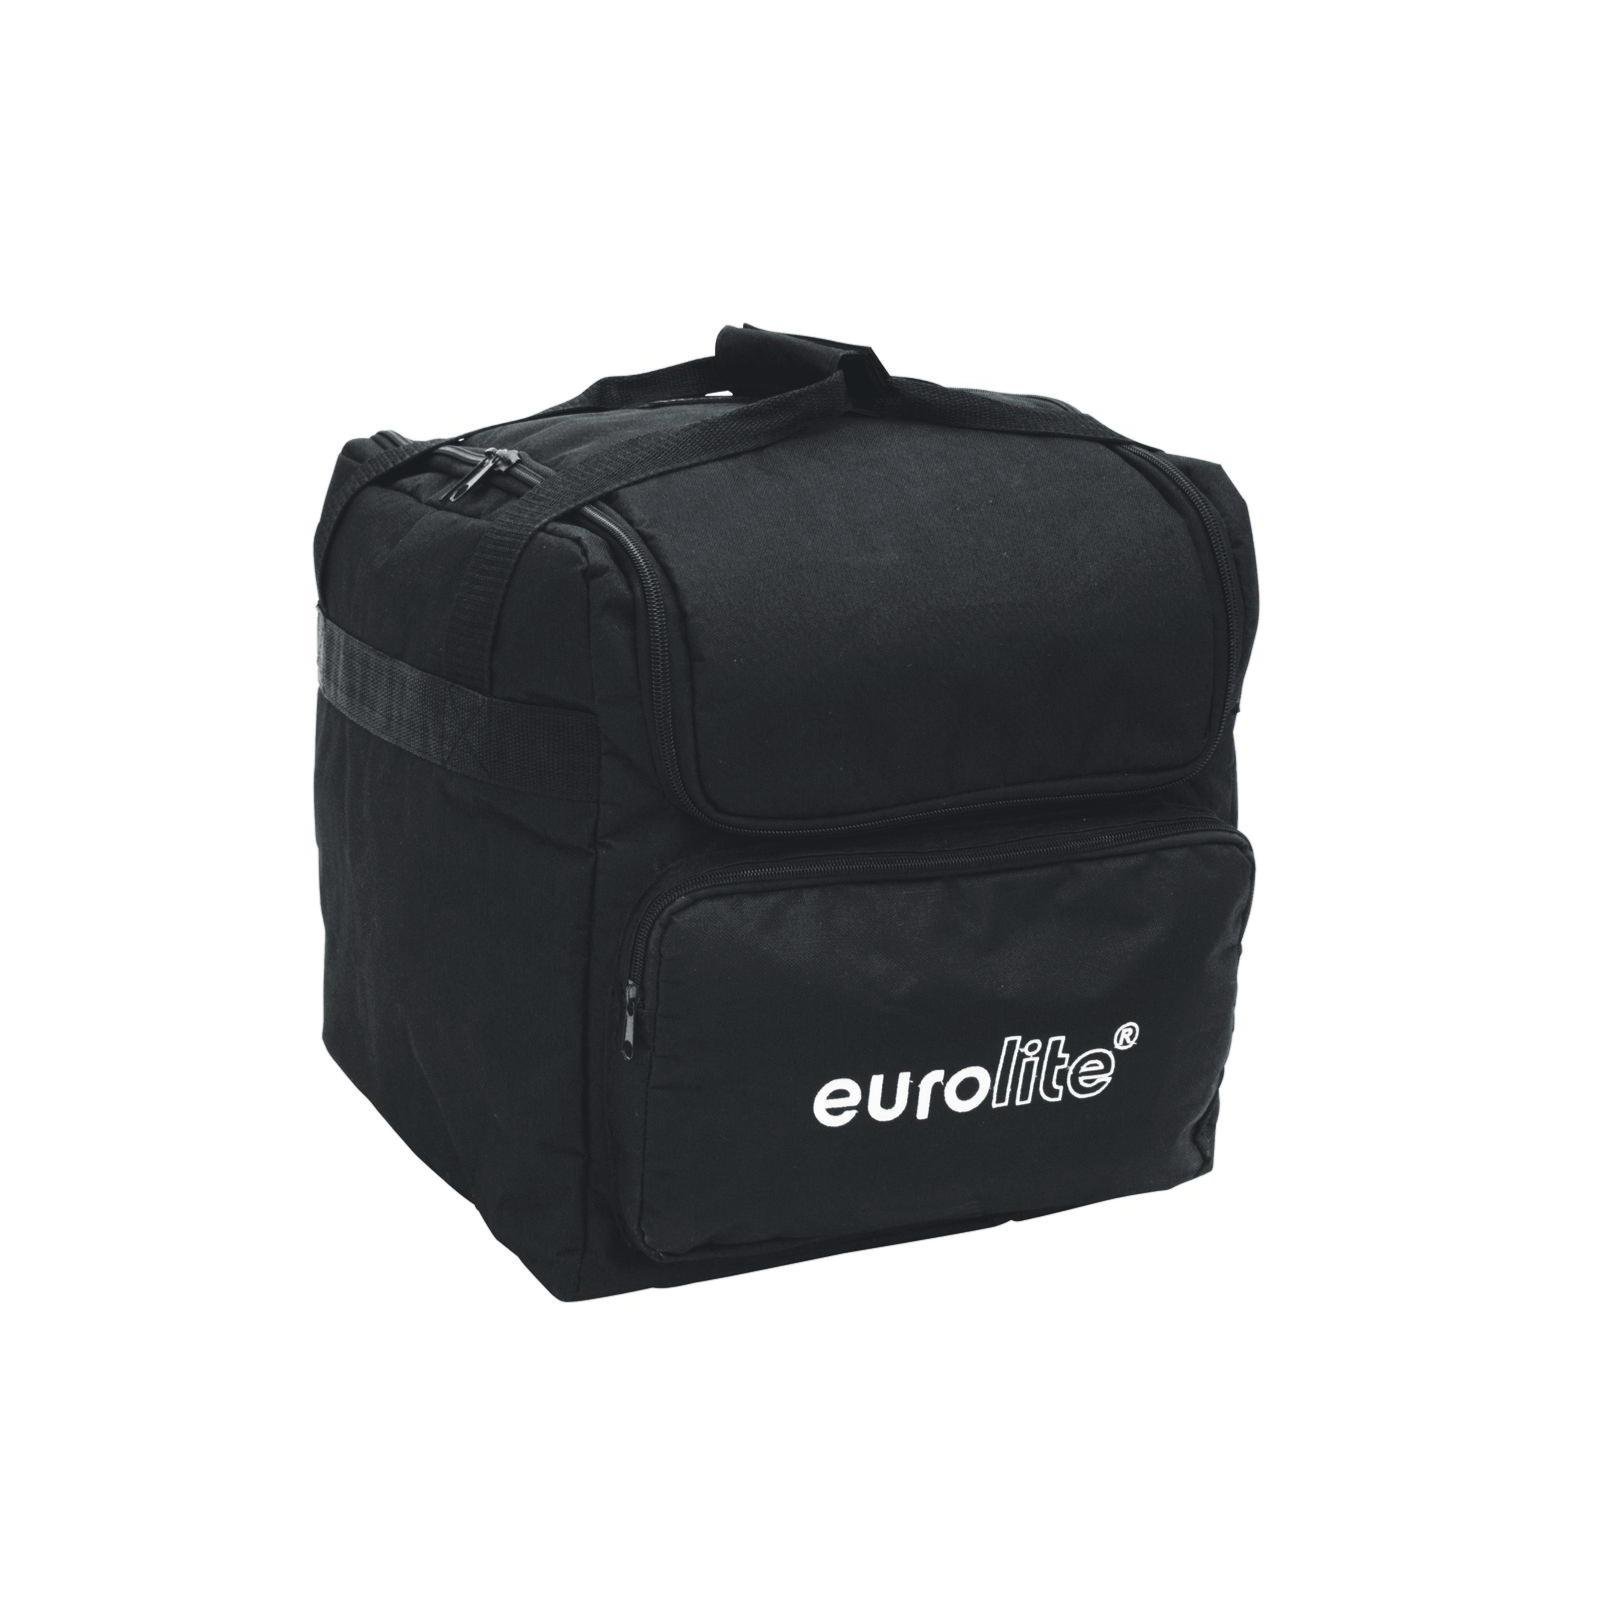 Eurolite SB-10 Bag Housse de transport 330 x 330 x 355 mm